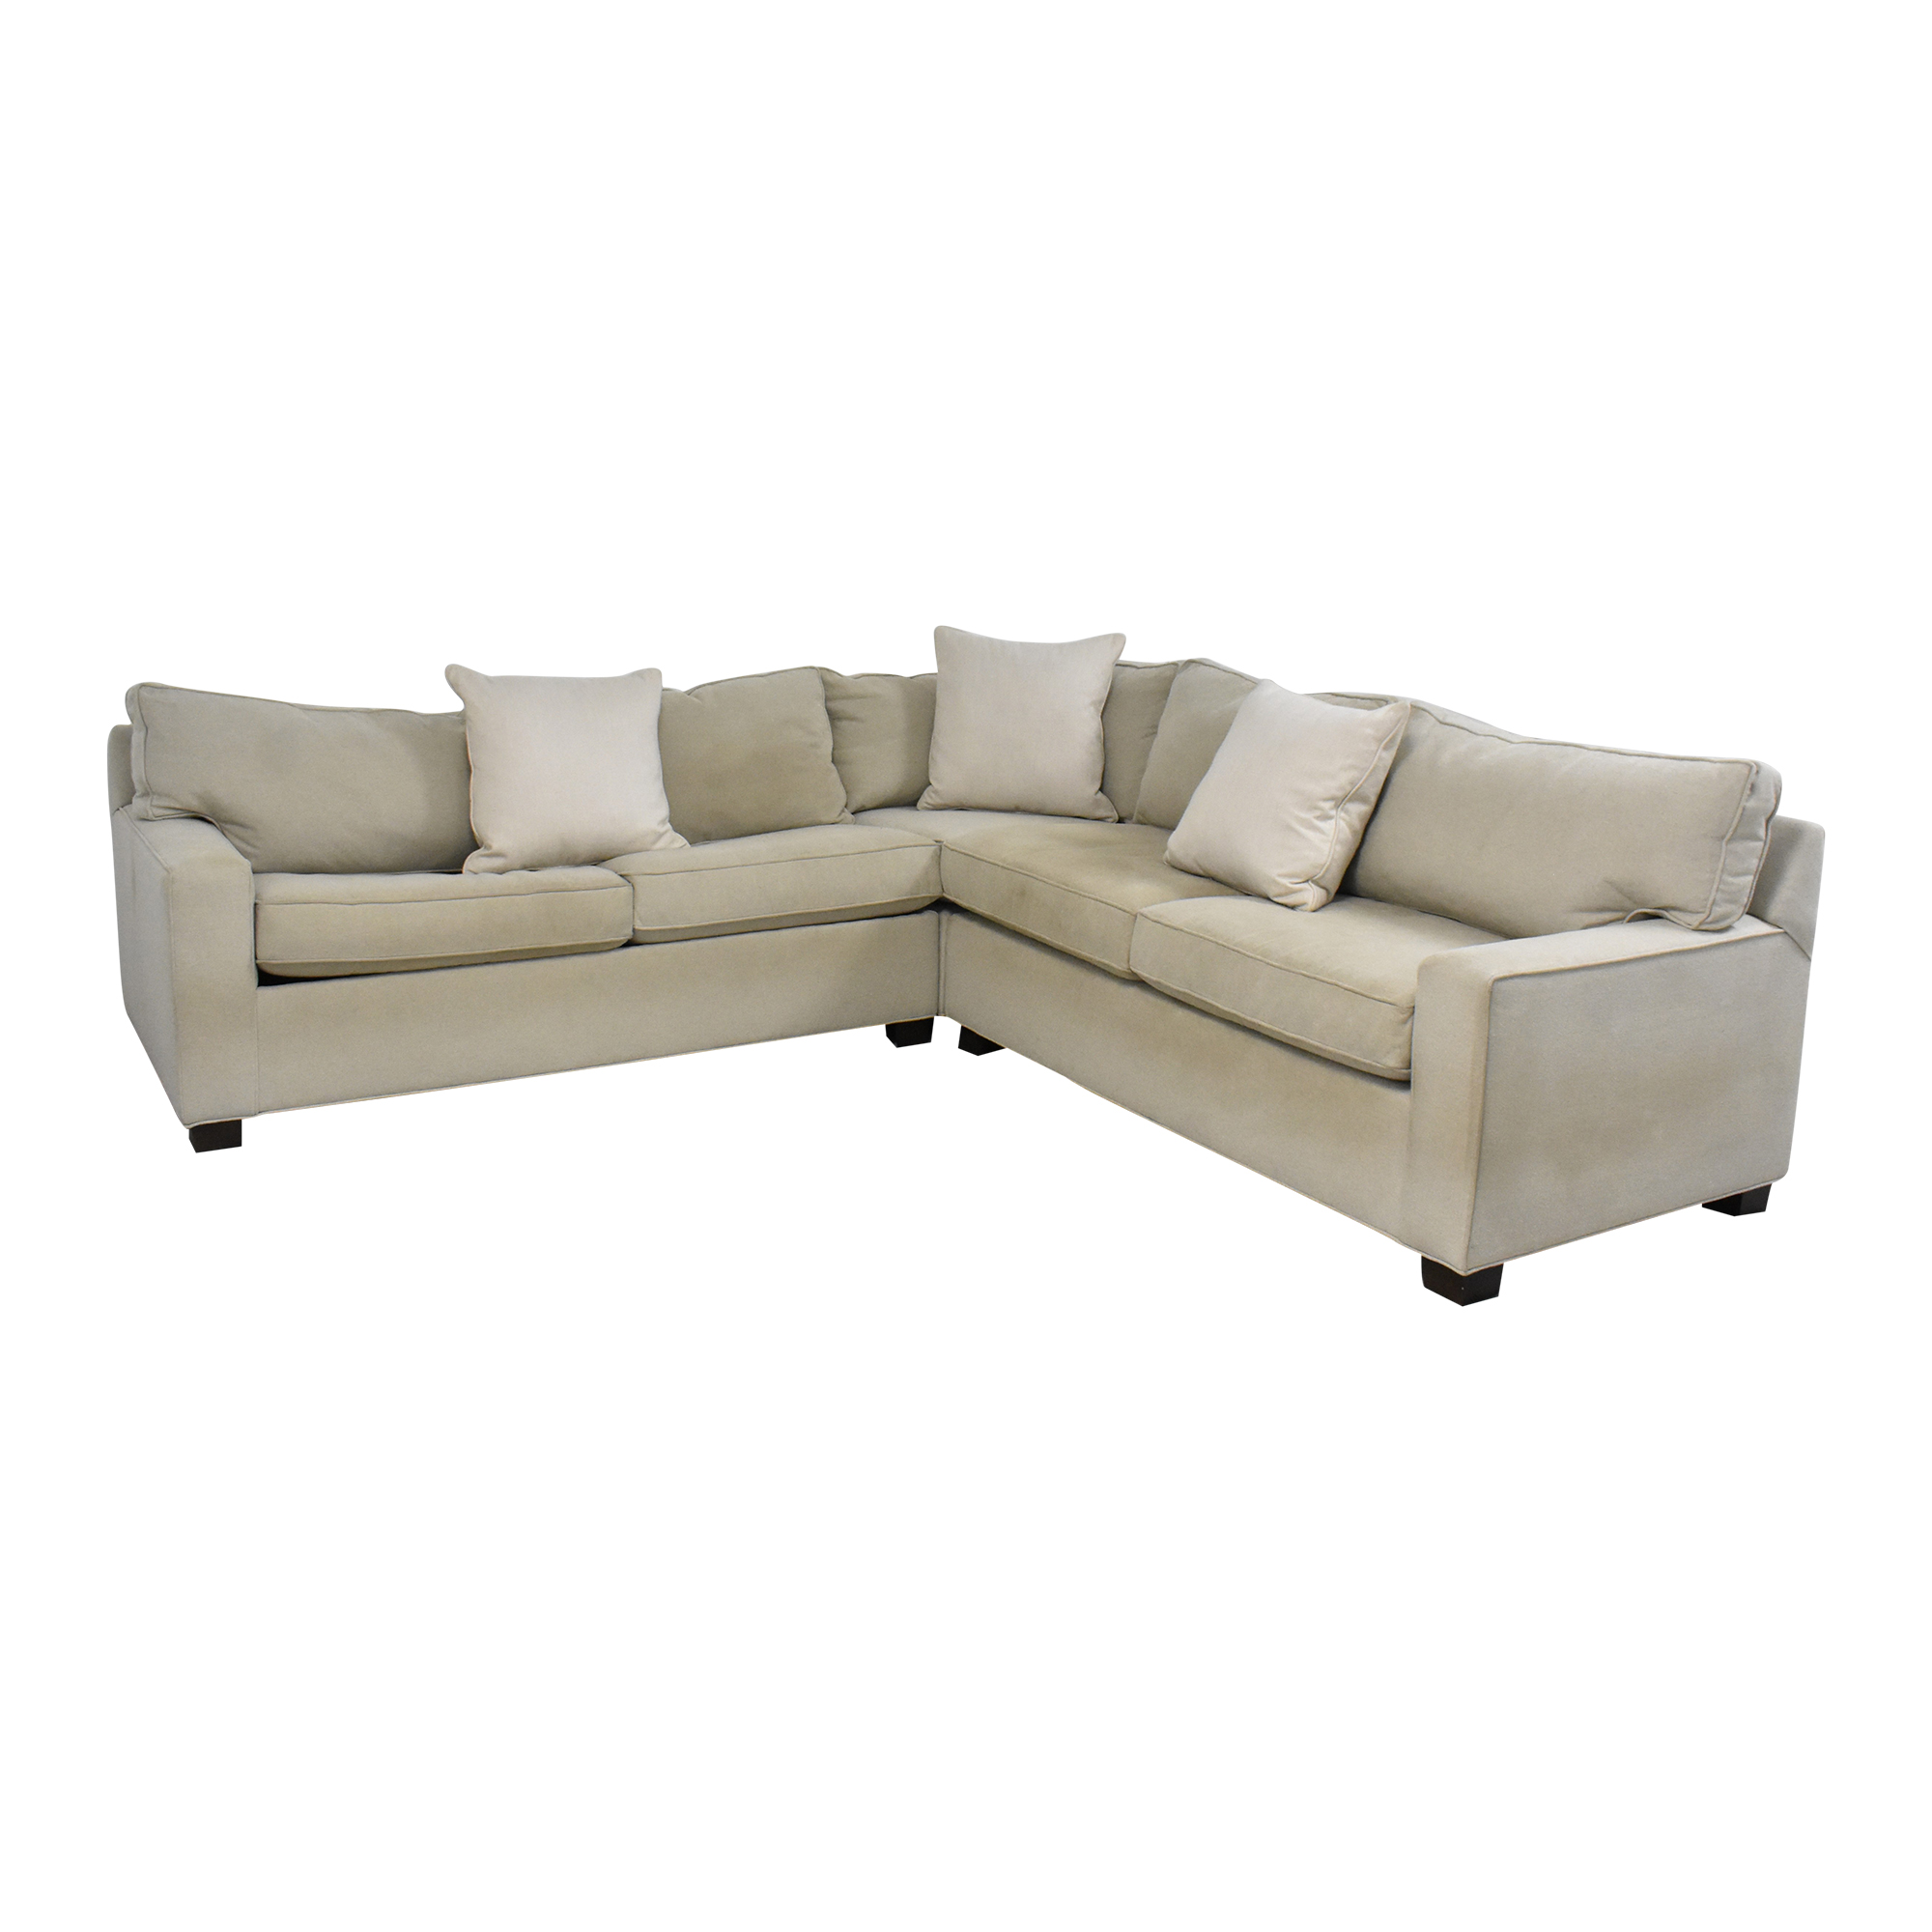 buy Mitchell Gold + Bob Williams Sectional Sleeper Sofa Mitchell Gold + Bob Williams Sectionals